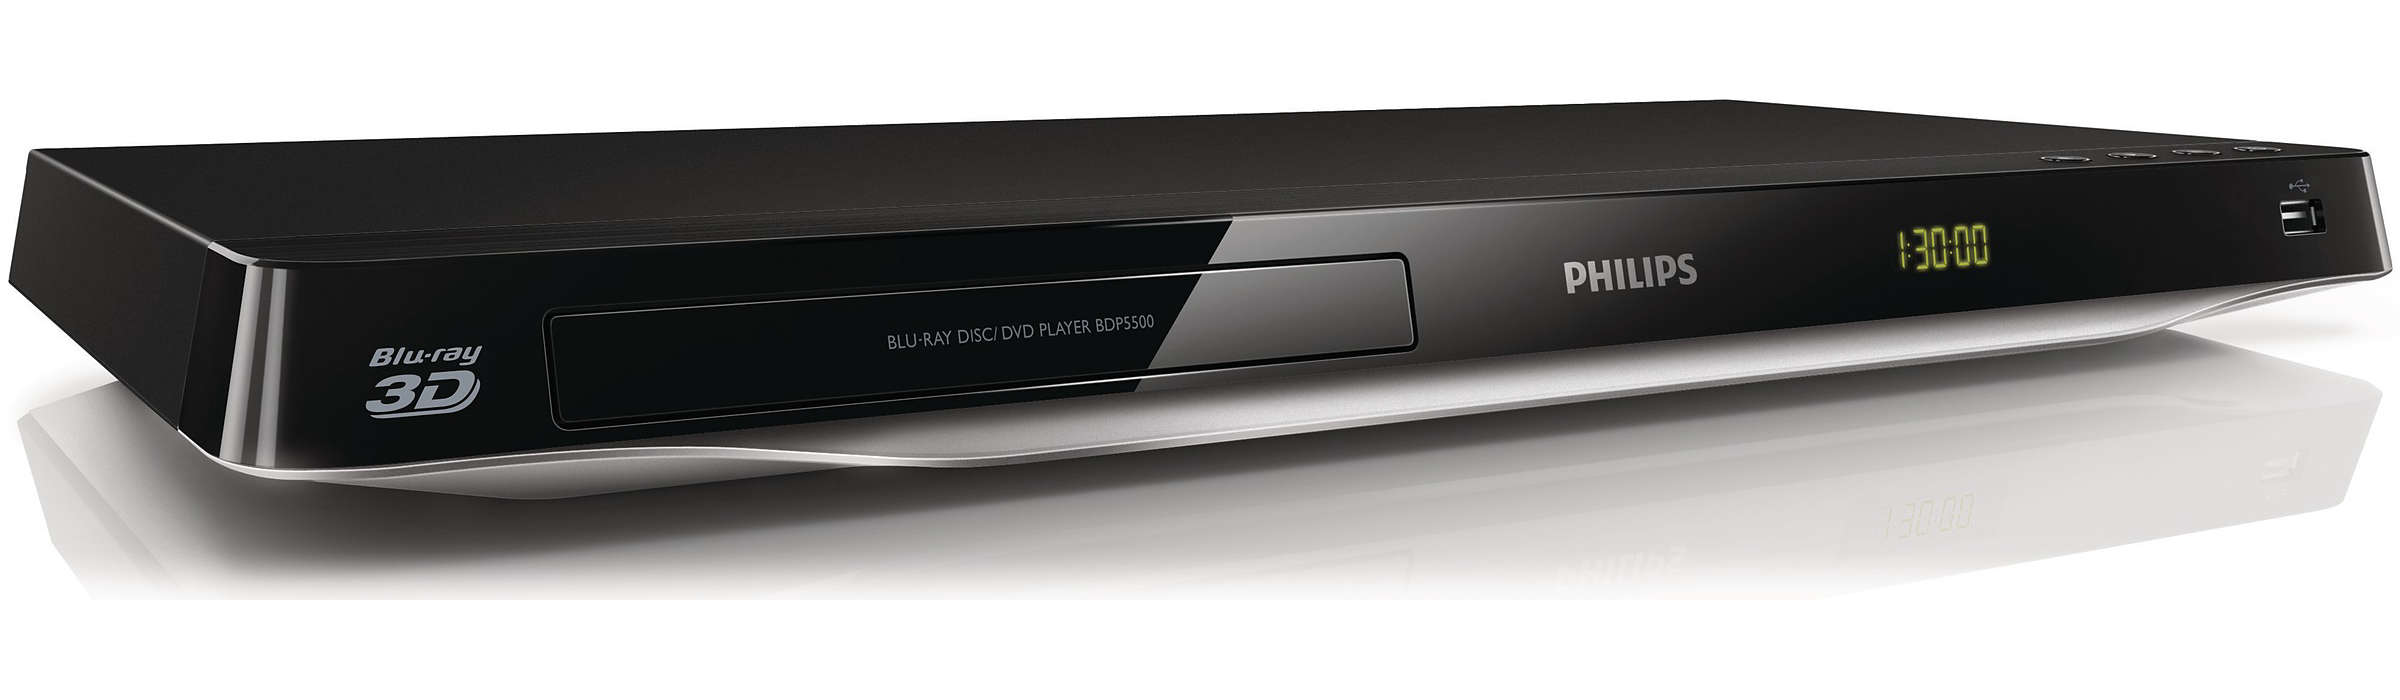 blu ray disc dvd player bdp5500 98 philips